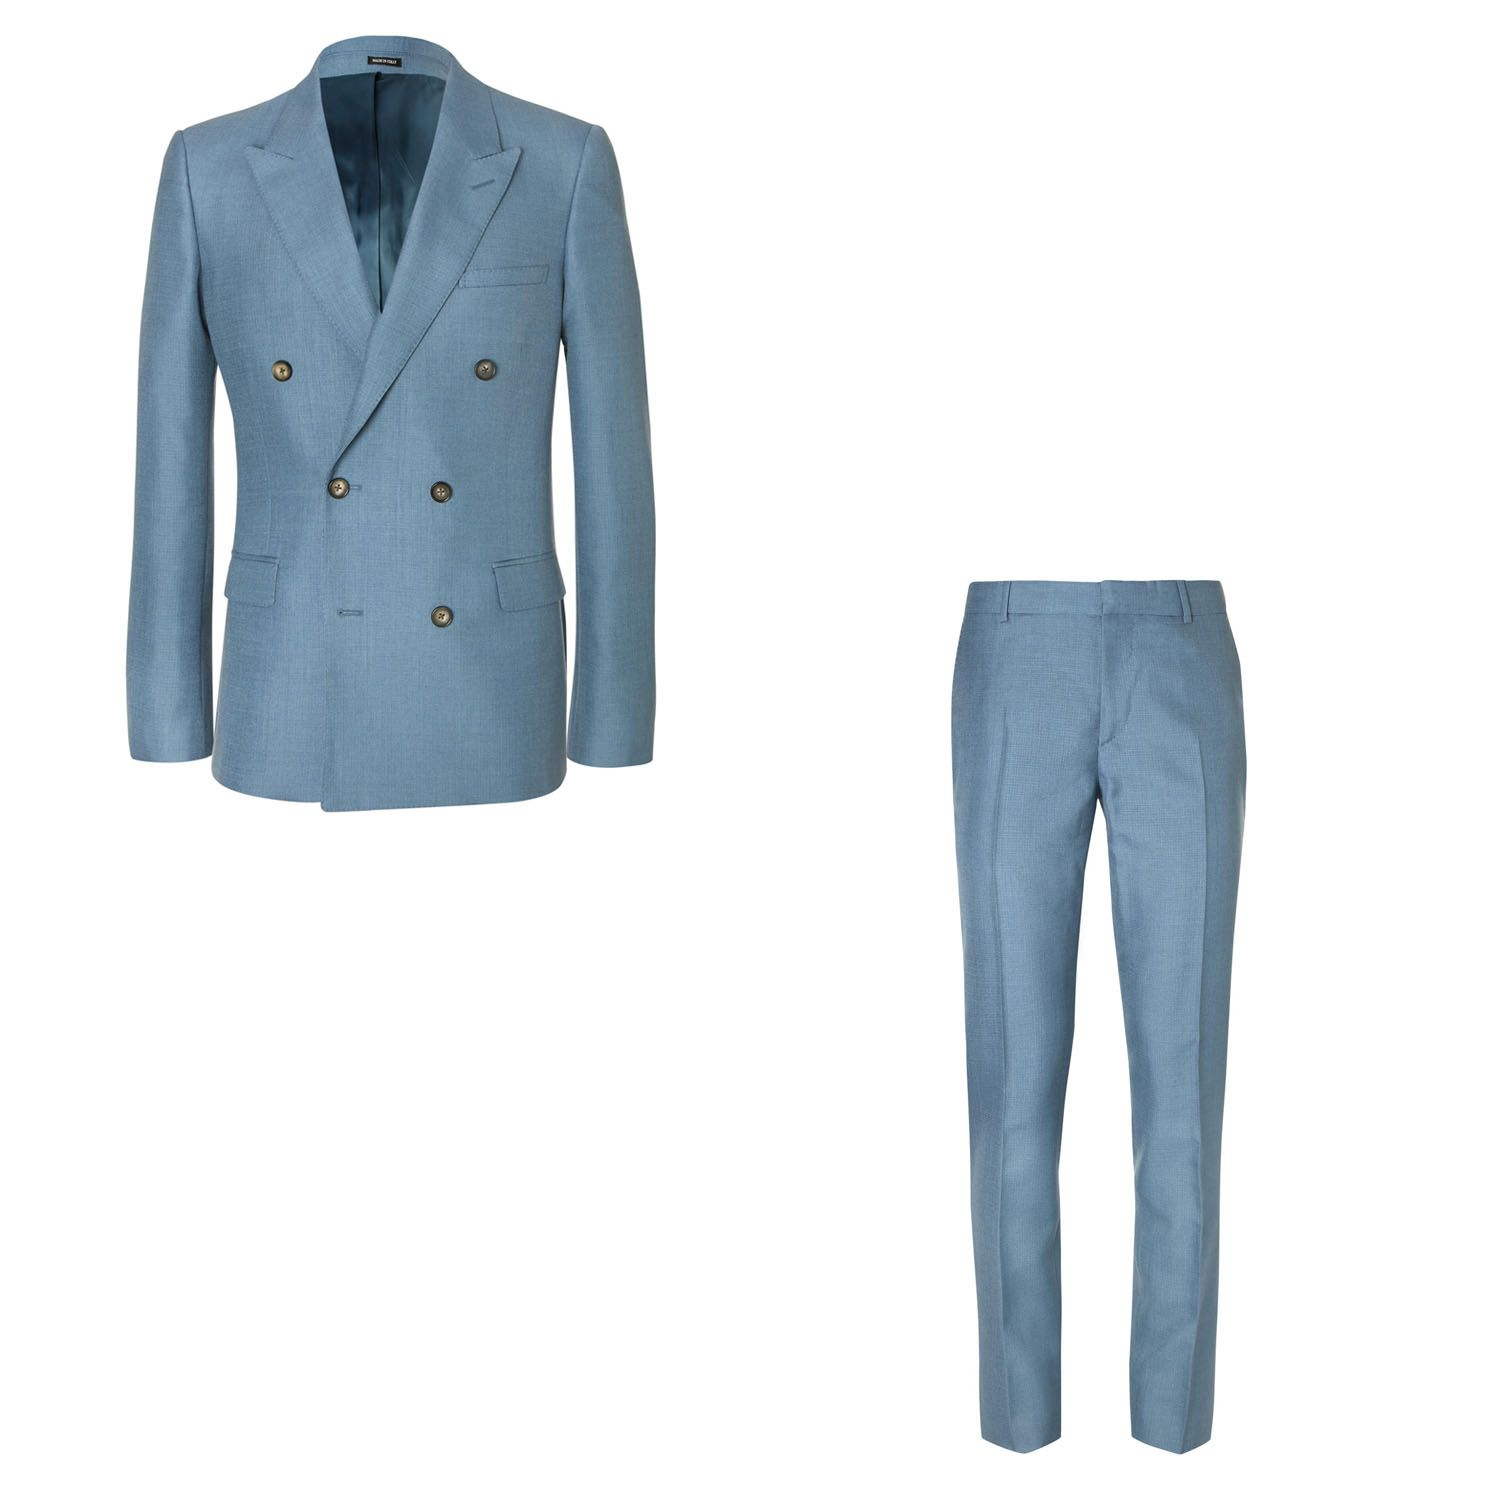 Best Men\'s Suits for Summer 2017 - Our Top 10 Summer Suits for Men